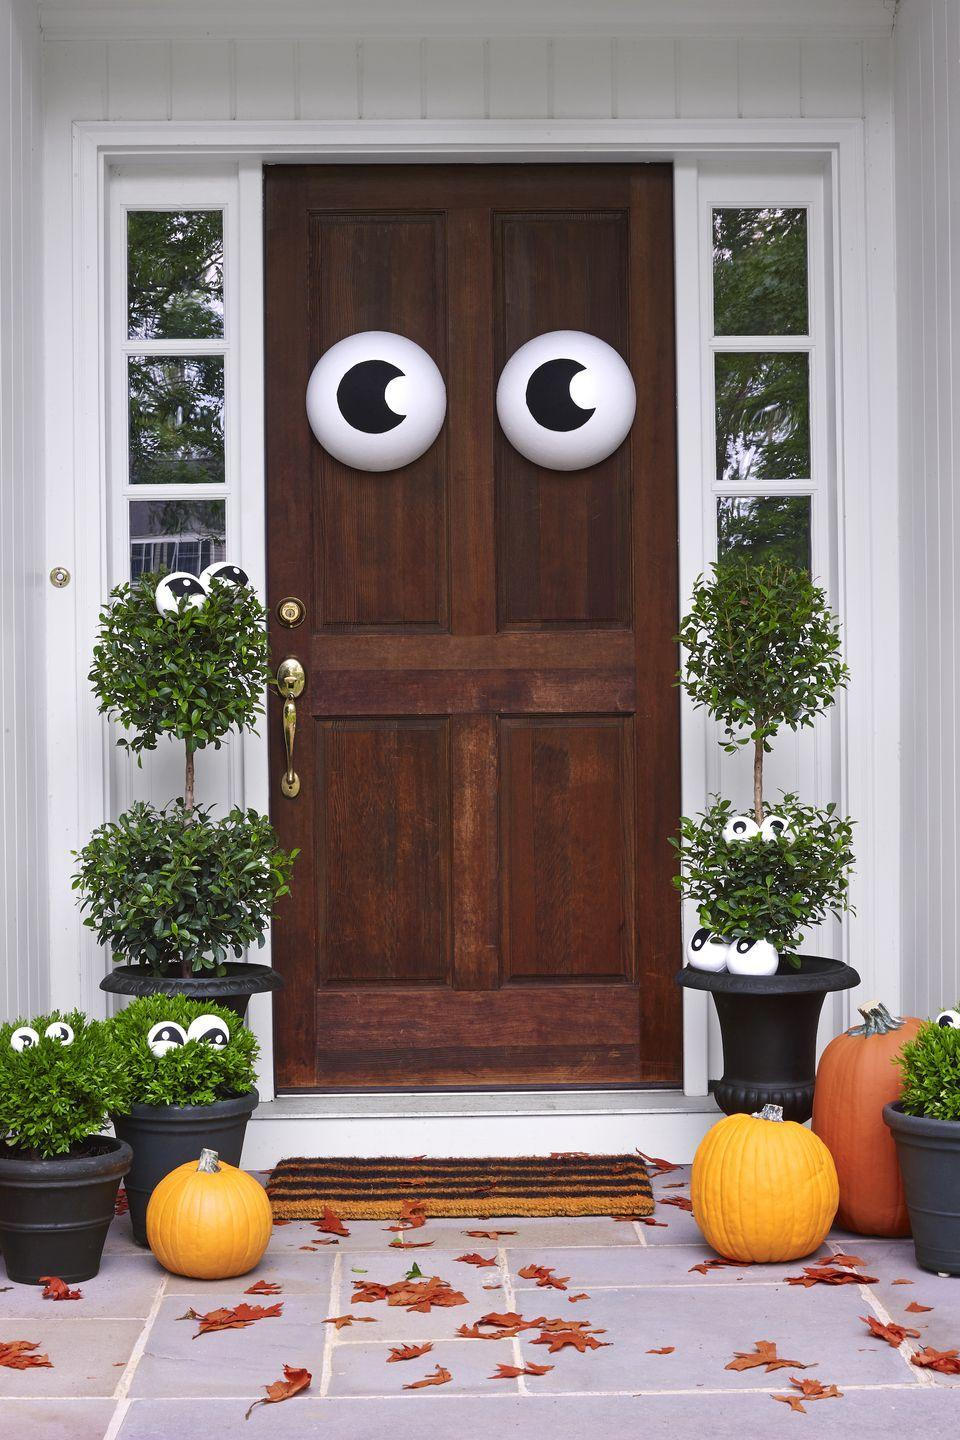 """<p>Here's one adorable way to let trick-or-treaters know that you're keeping an eye on them.</p><p><em><a href=""""https://www.womansday.com/home/decorating/g1279/easy-halloween-decorations/"""" rel=""""nofollow noopener"""" target=""""_blank"""" data-ylk=""""slk:Get the tutorial at Woman's Day »"""" class=""""link rapid-noclick-resp"""">Get the tutorial at Woman's Day »</a></em> </p>"""